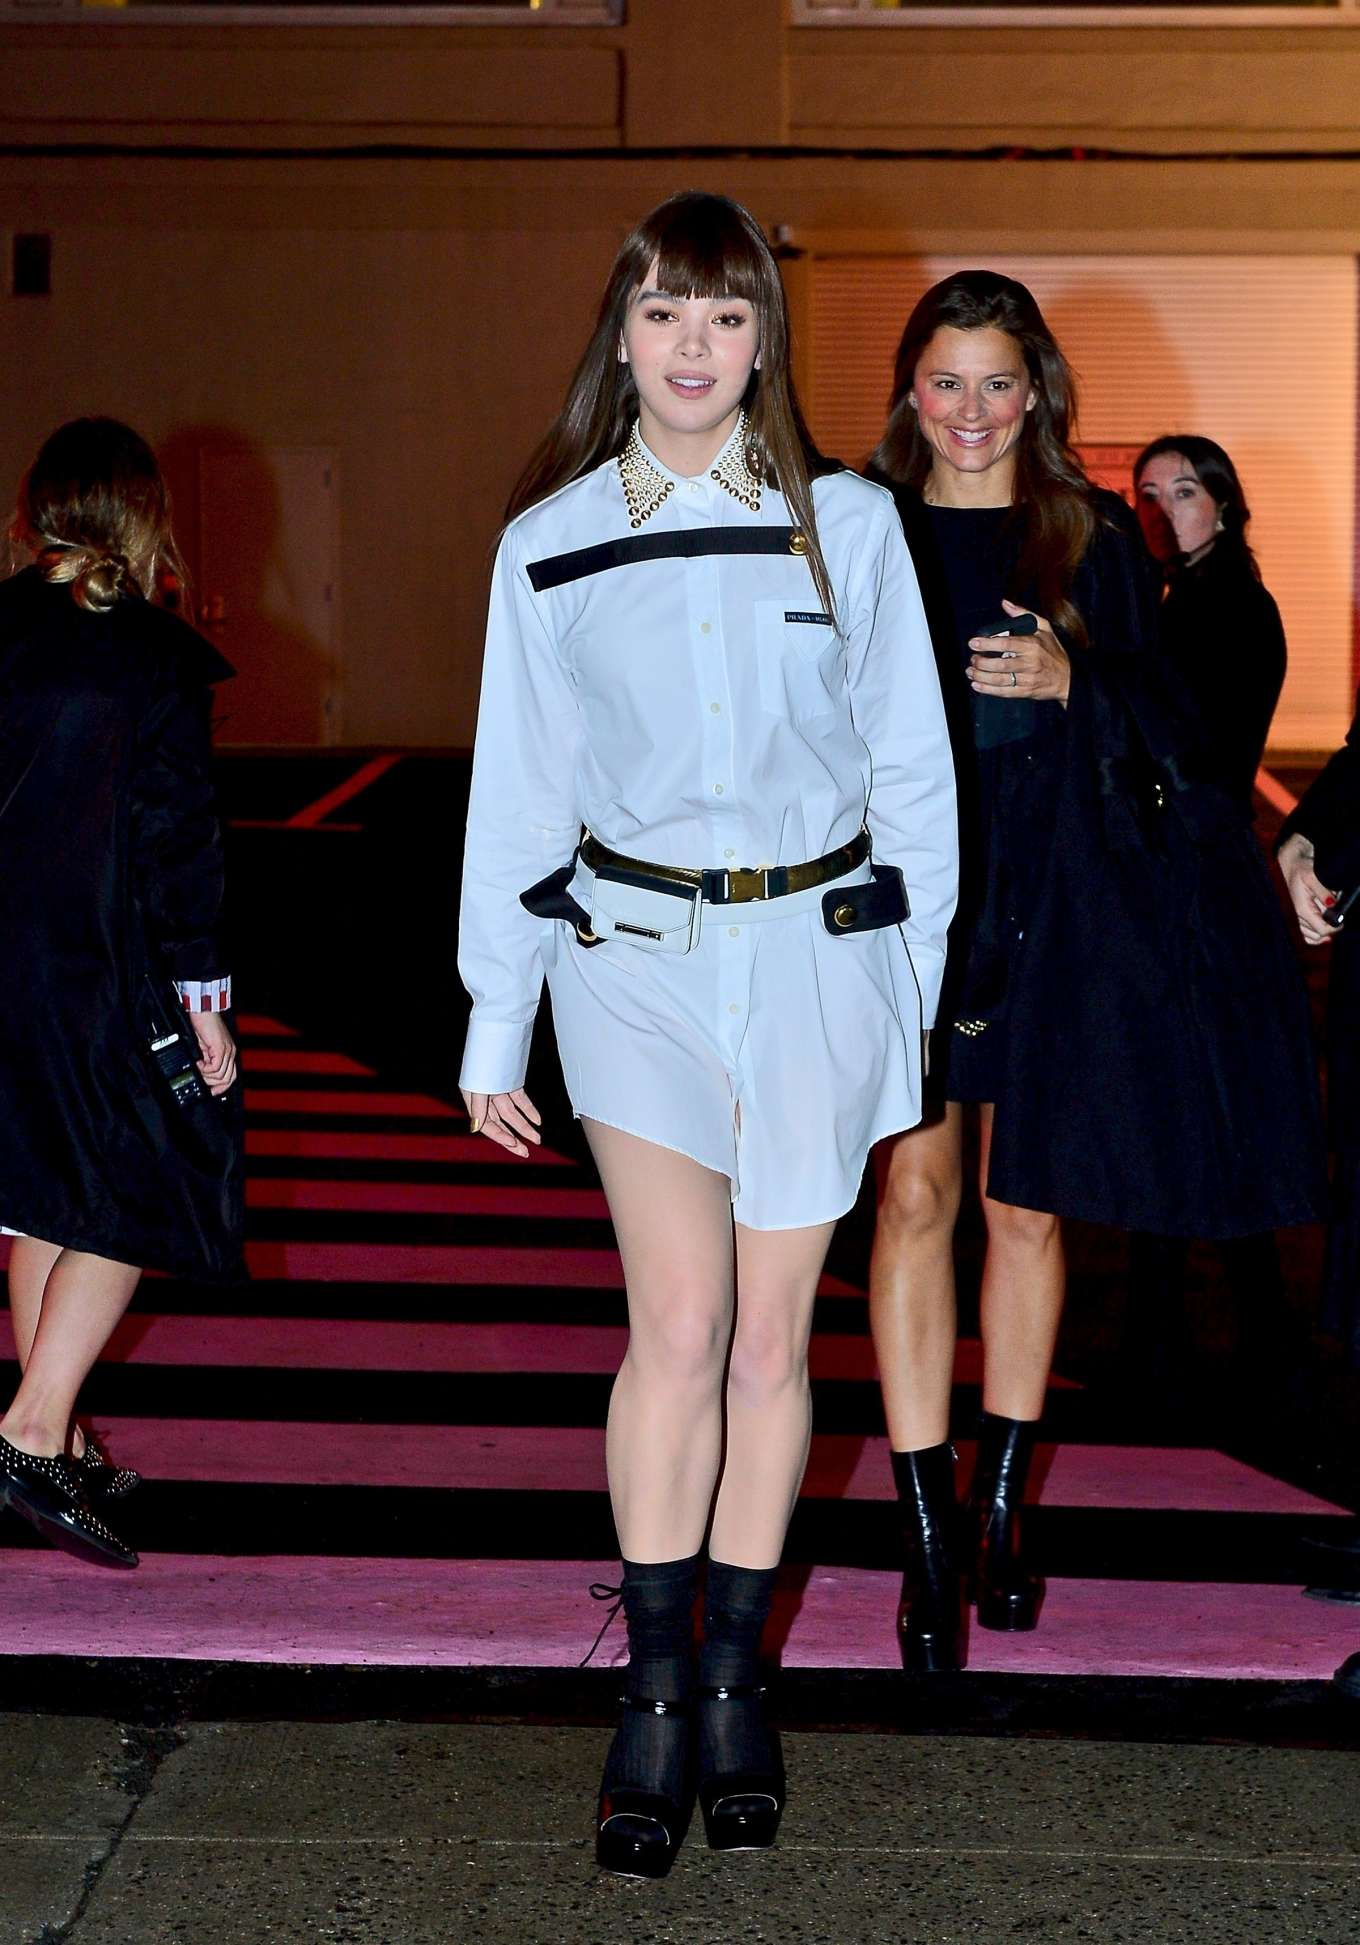 Hailee Steinfeld 2019 : Hailee Steinfeld: leaving the Prada Resort 2020 Collection show in NYC-07